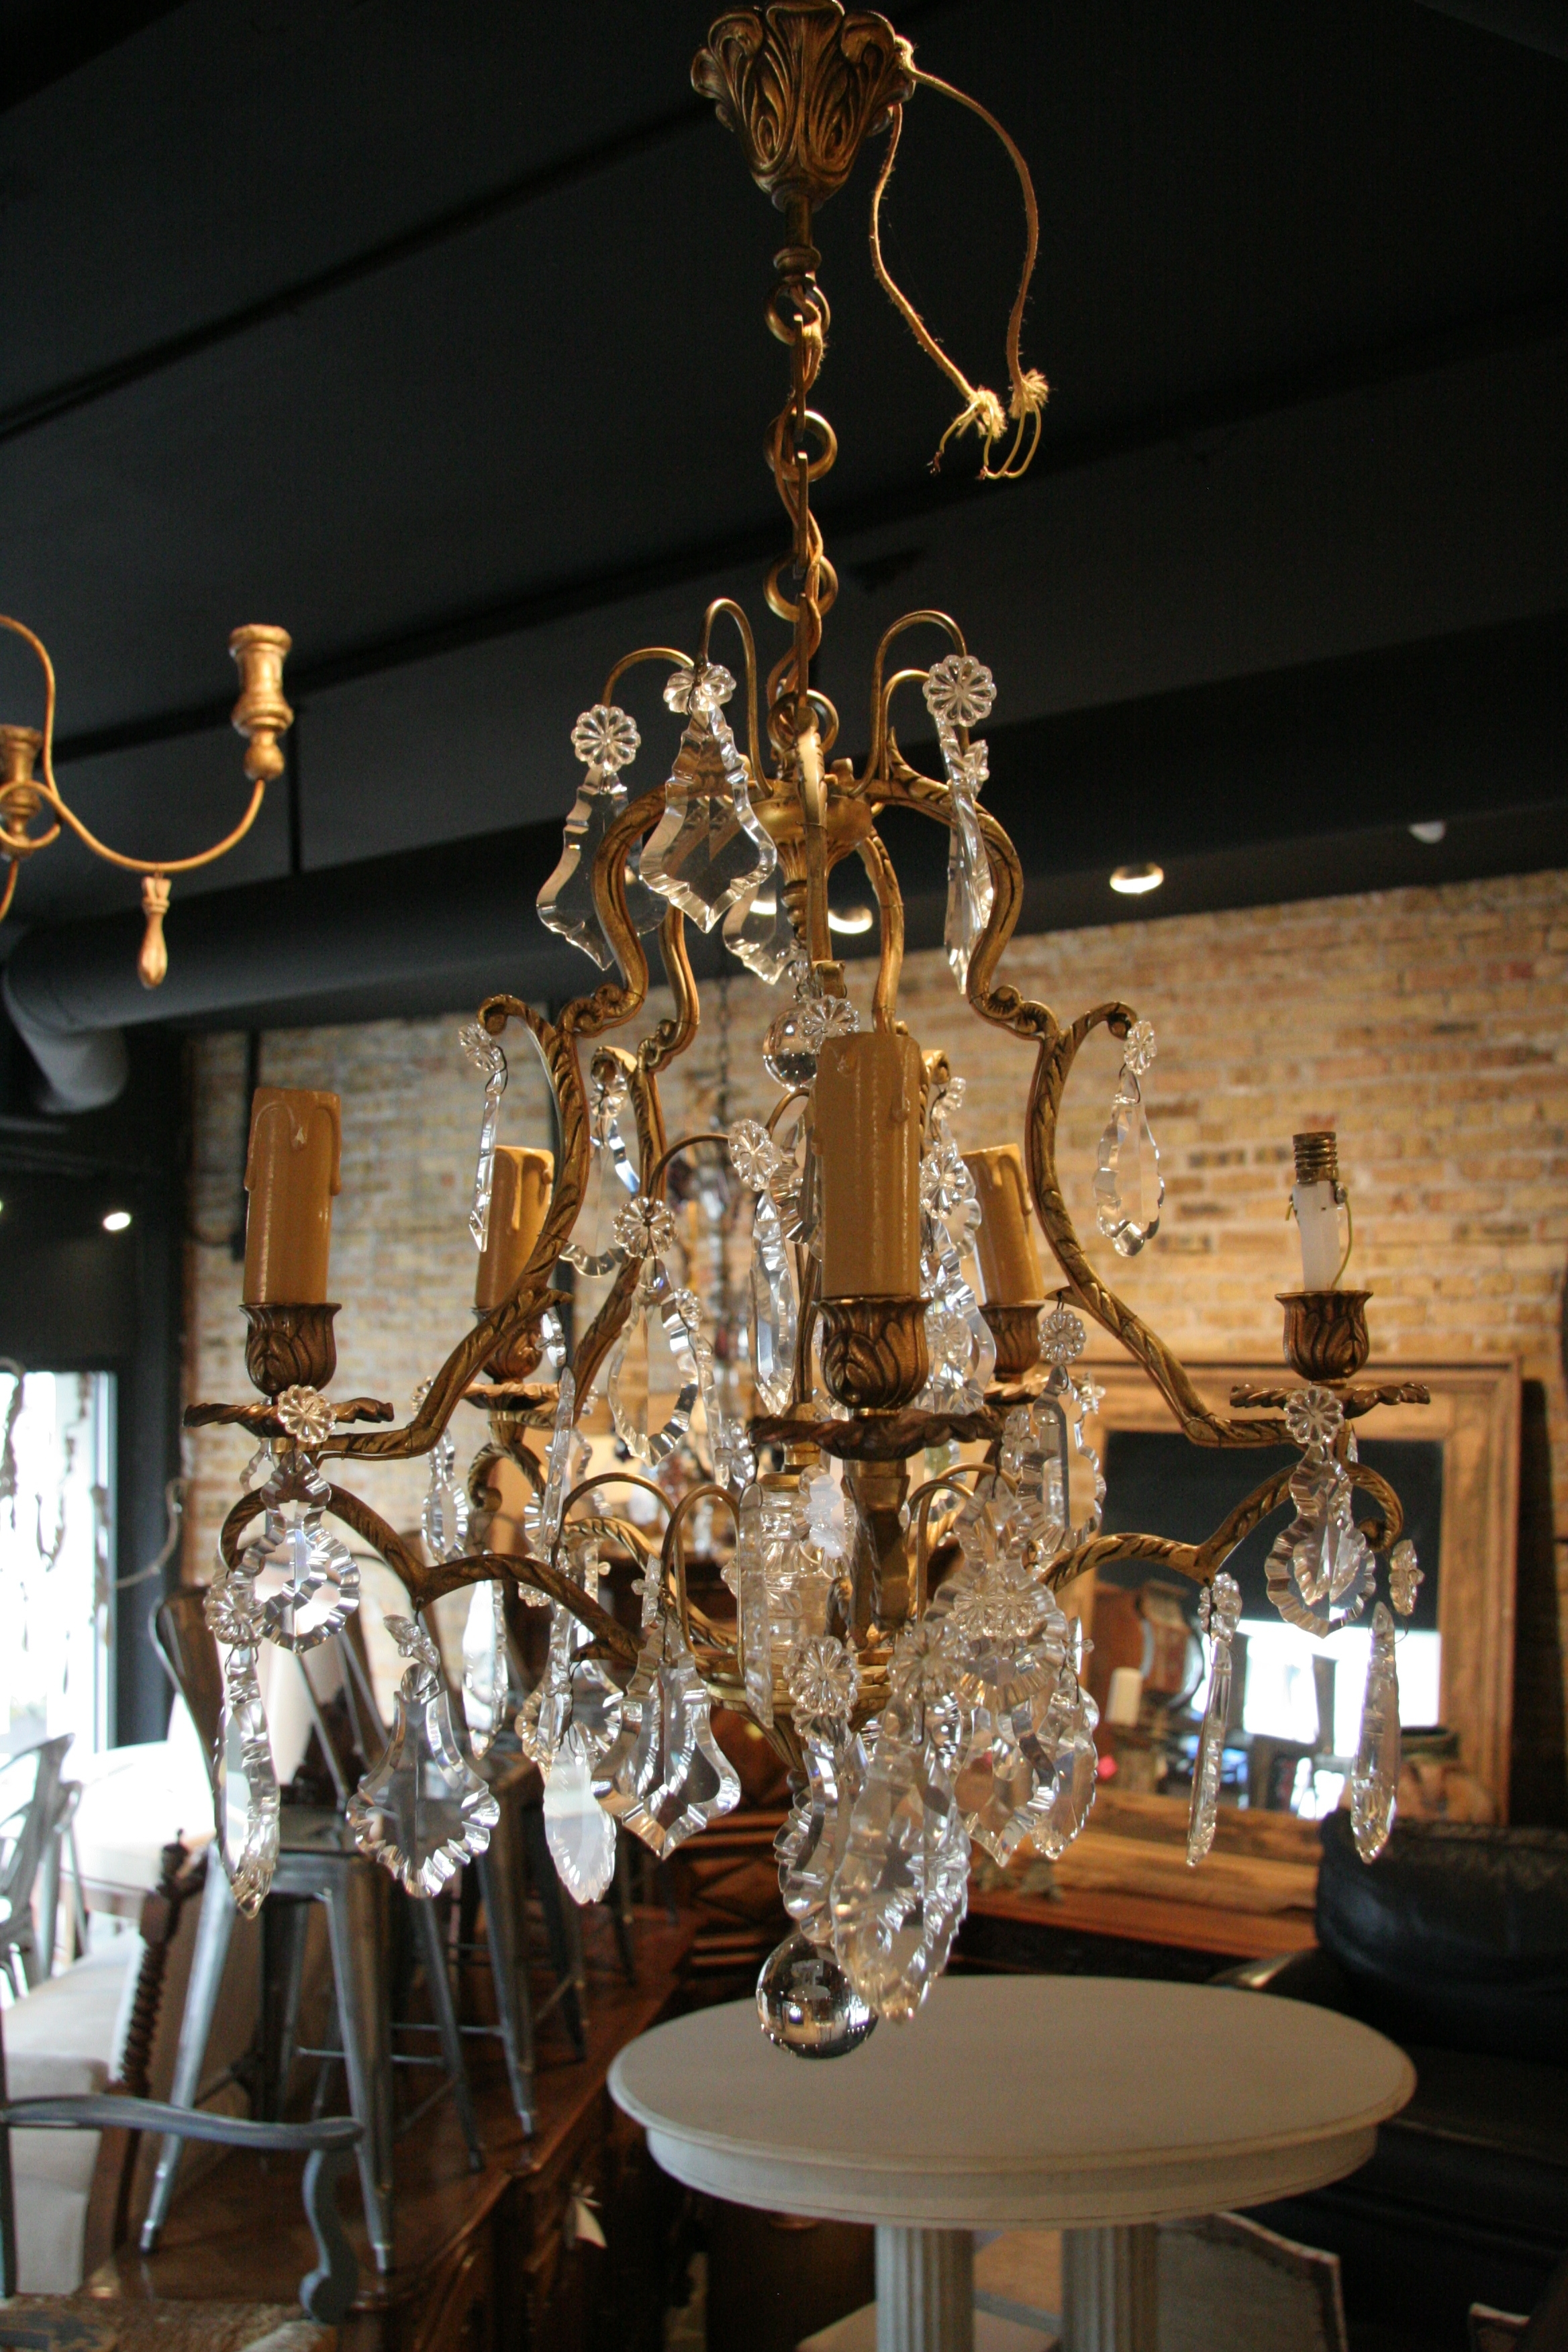 Antique French 5 Light Brass And Crystal Chandelier – Sold – With Well Known Vintage Chandeliers (View 14 of 15)